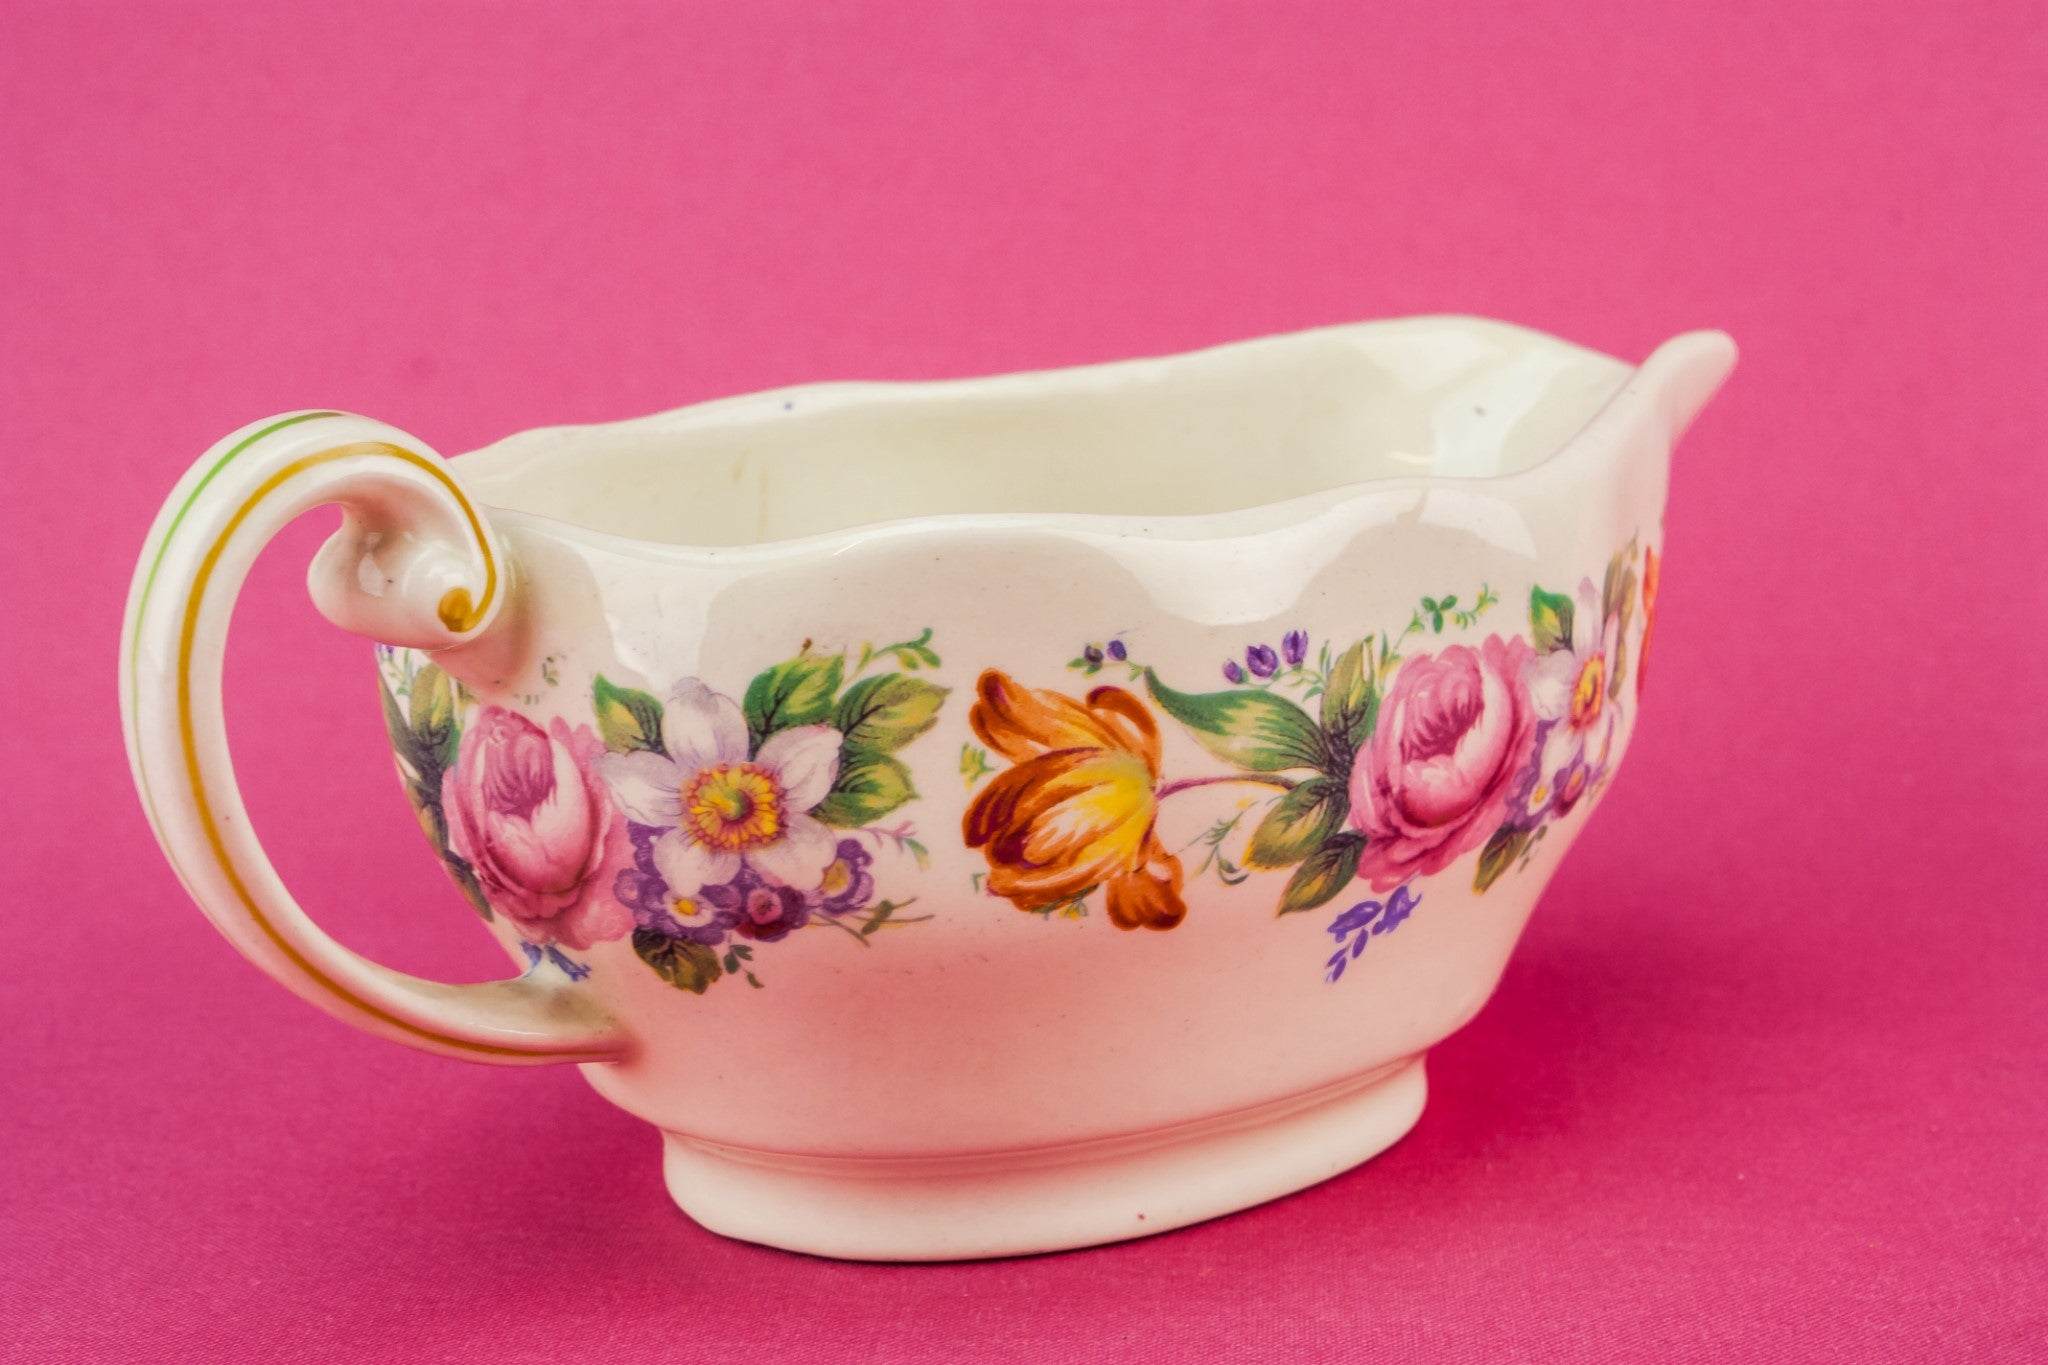 Floral gravy boat